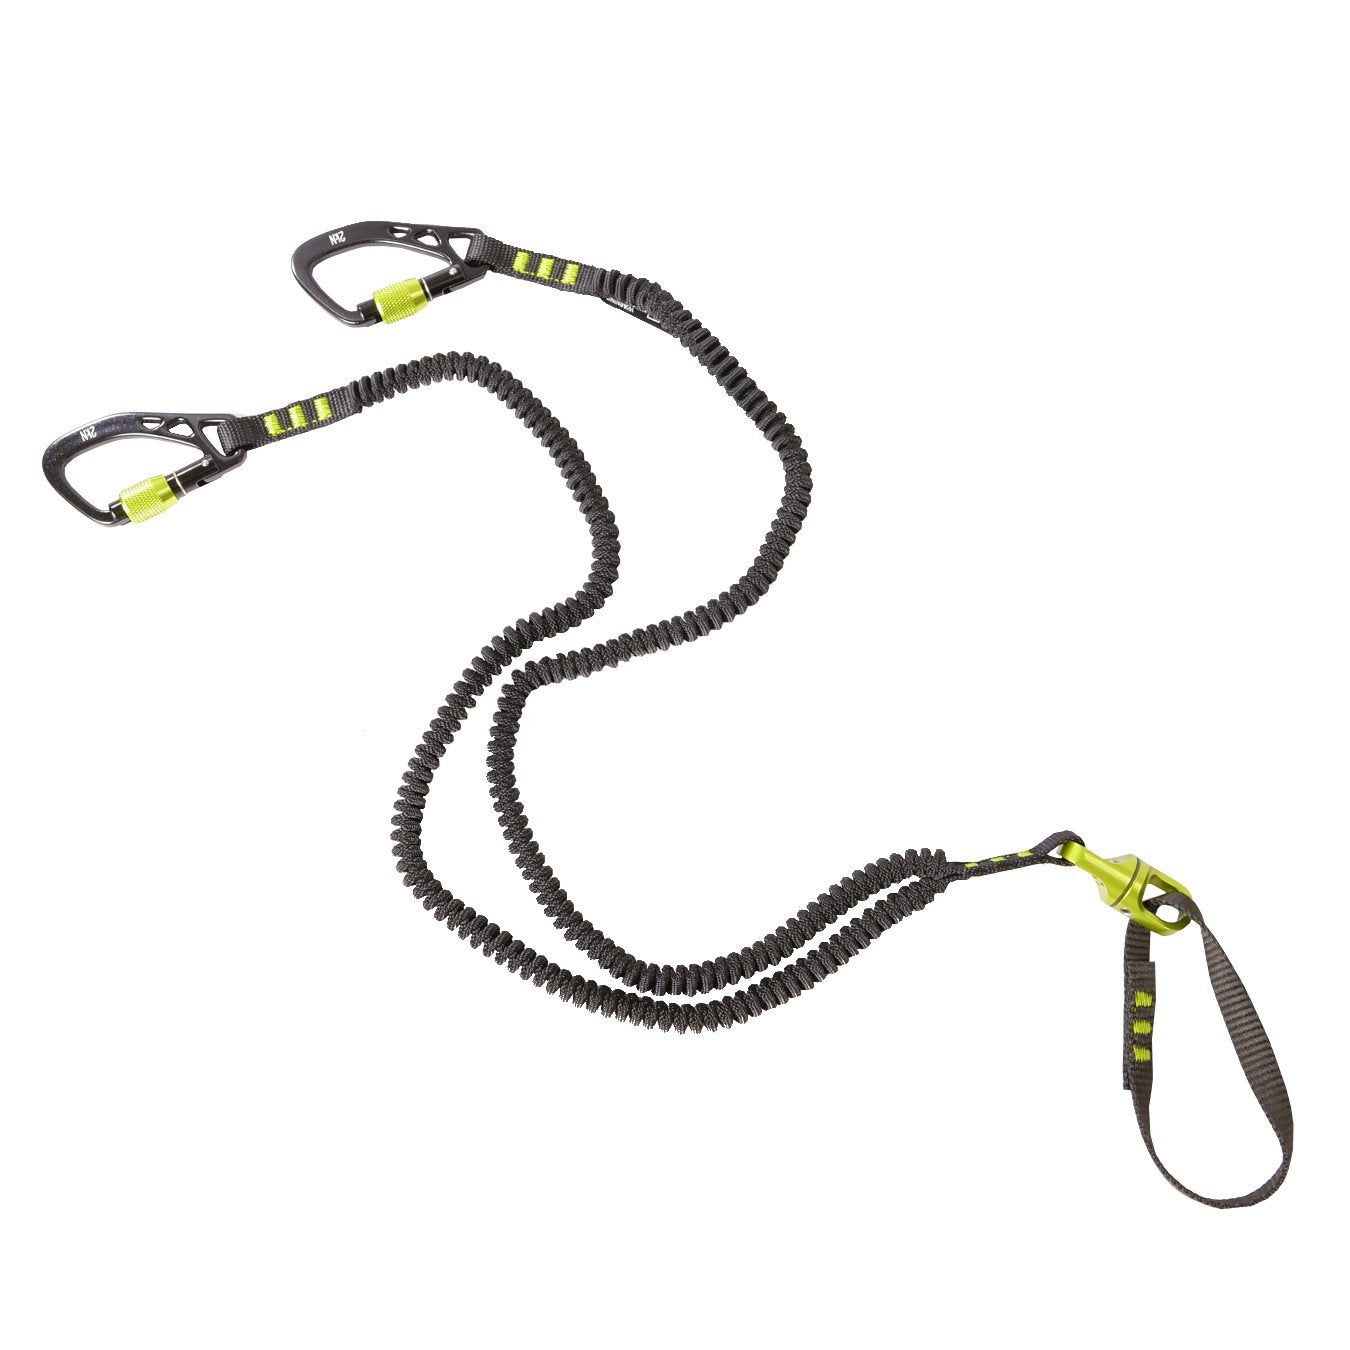 Black Diamond Spinner Leash in Green and Black with Screw gates, stretchy lanyard and Spinner